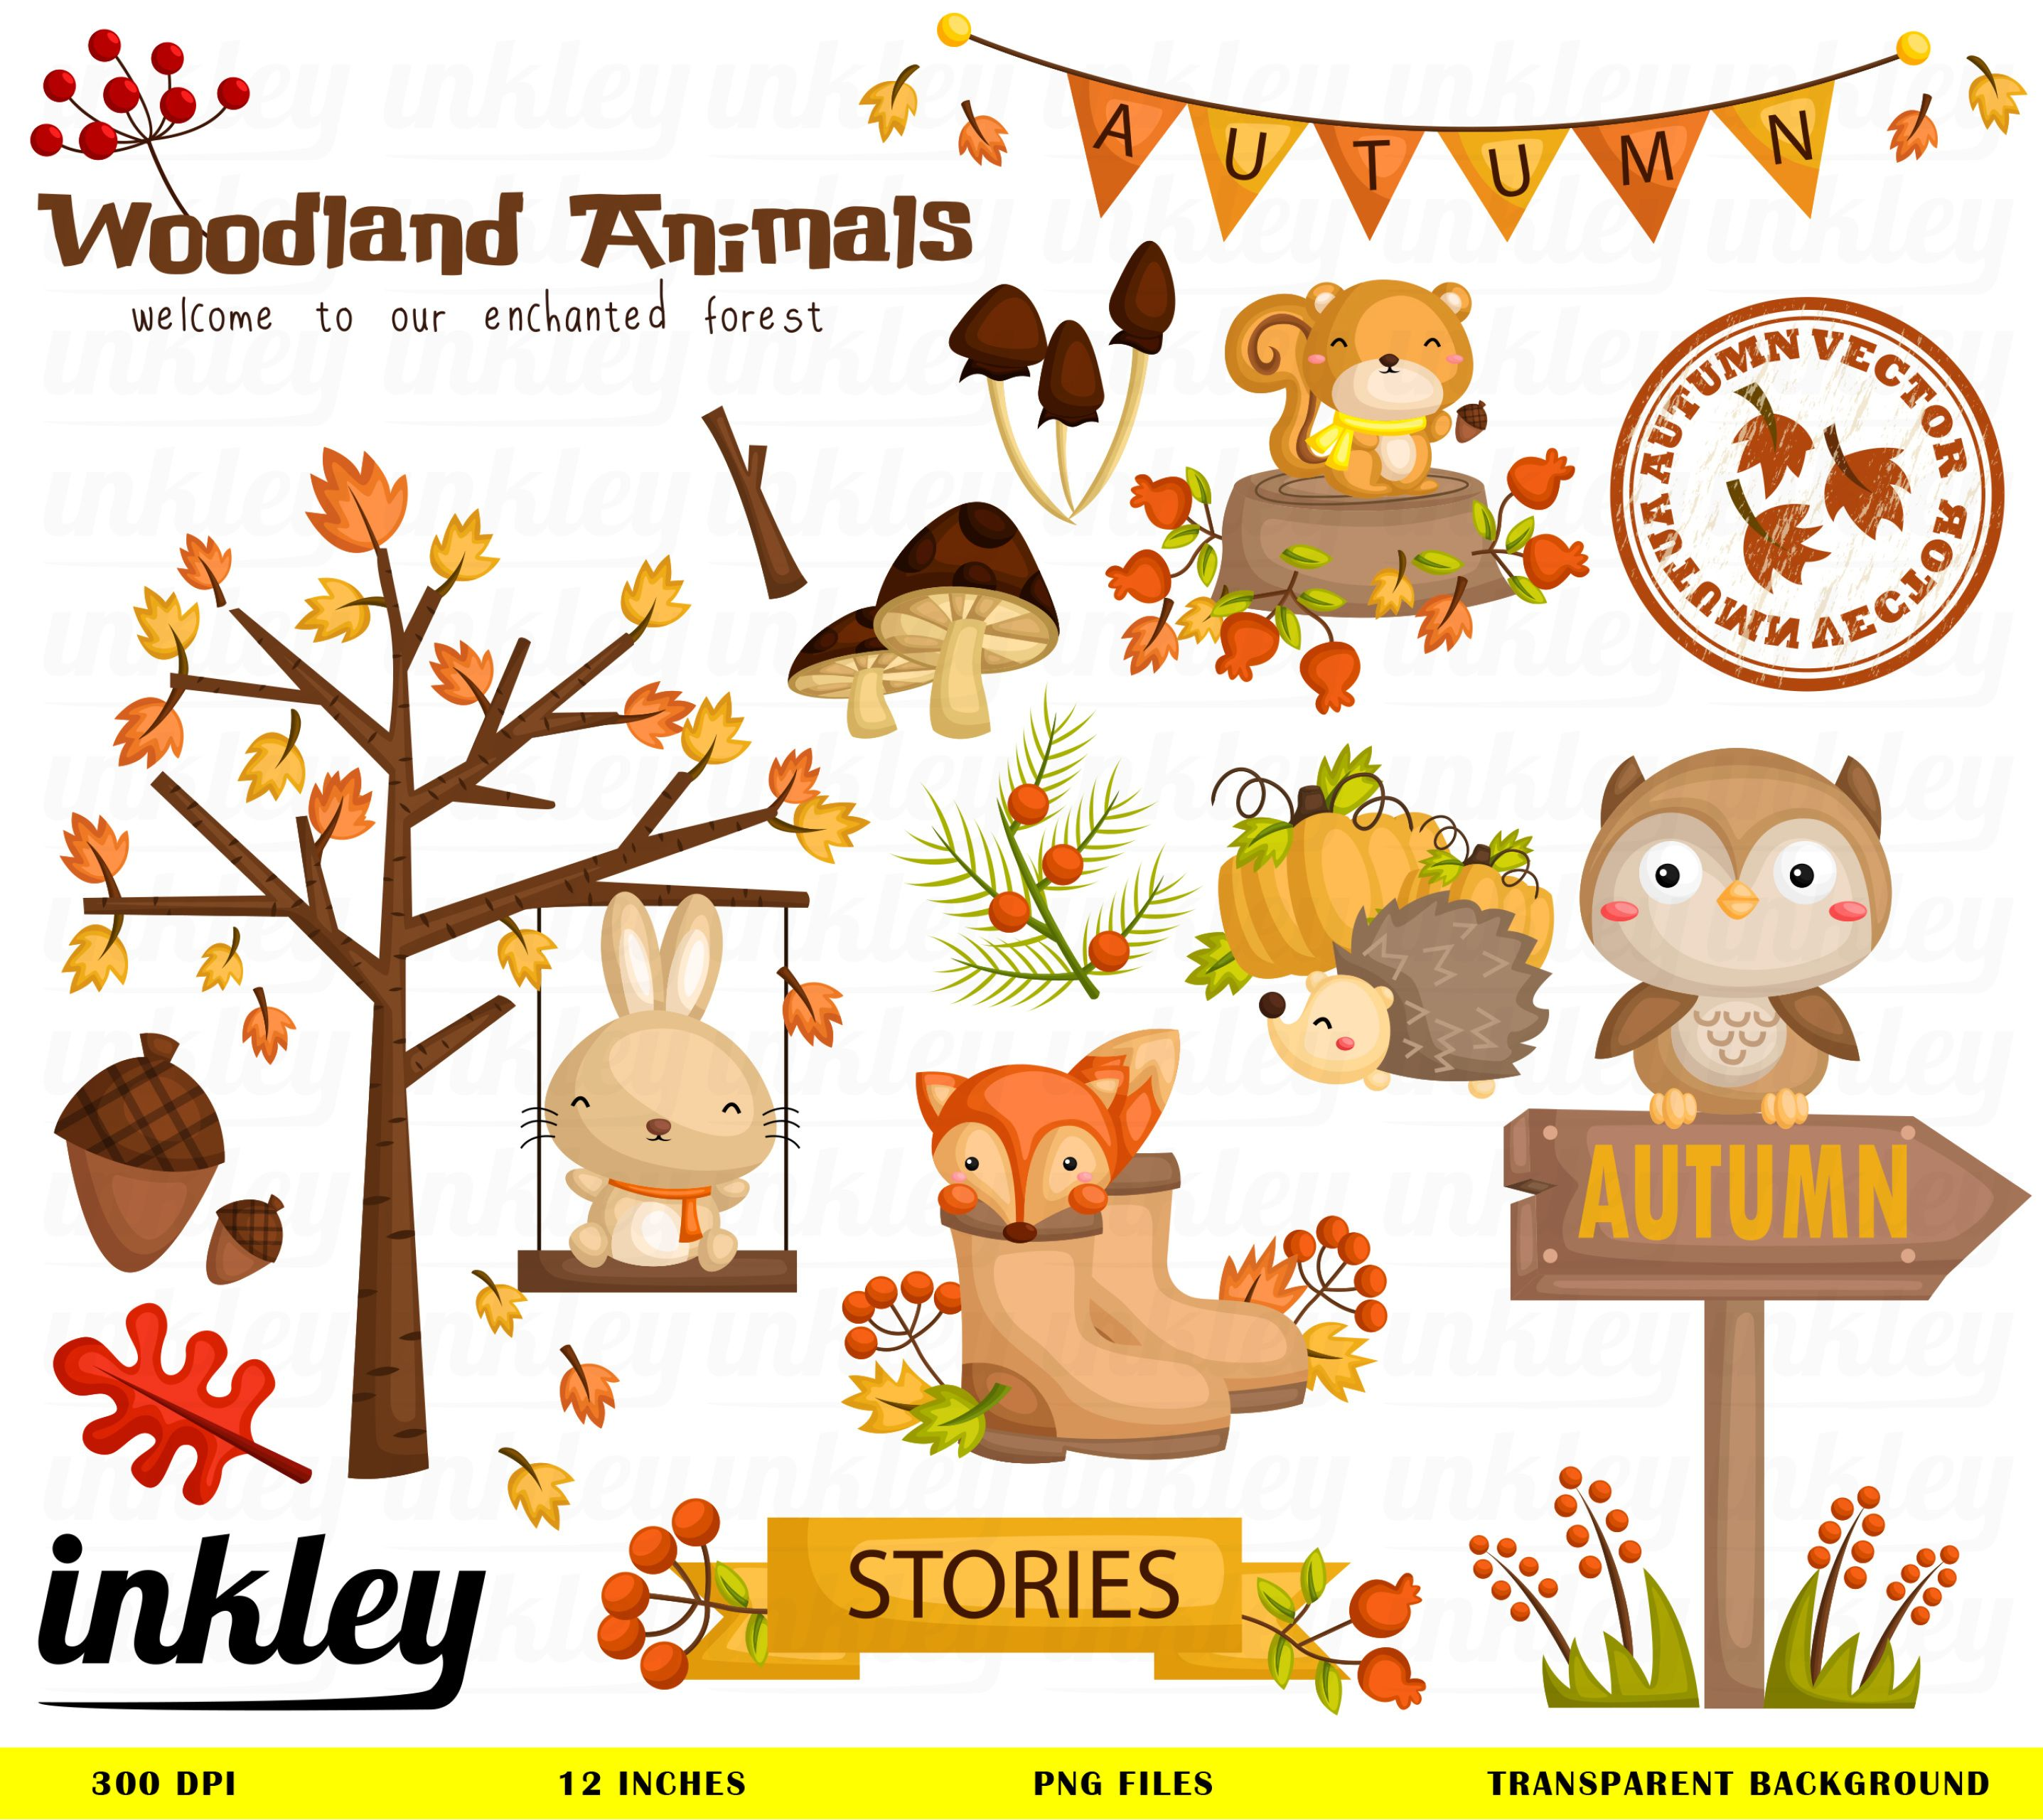 Ready To Use Woodland Animal Illustration And Clipart For Personal And Commercial Use Autumn Animals Animal Clipart Cute Doodles Drawings